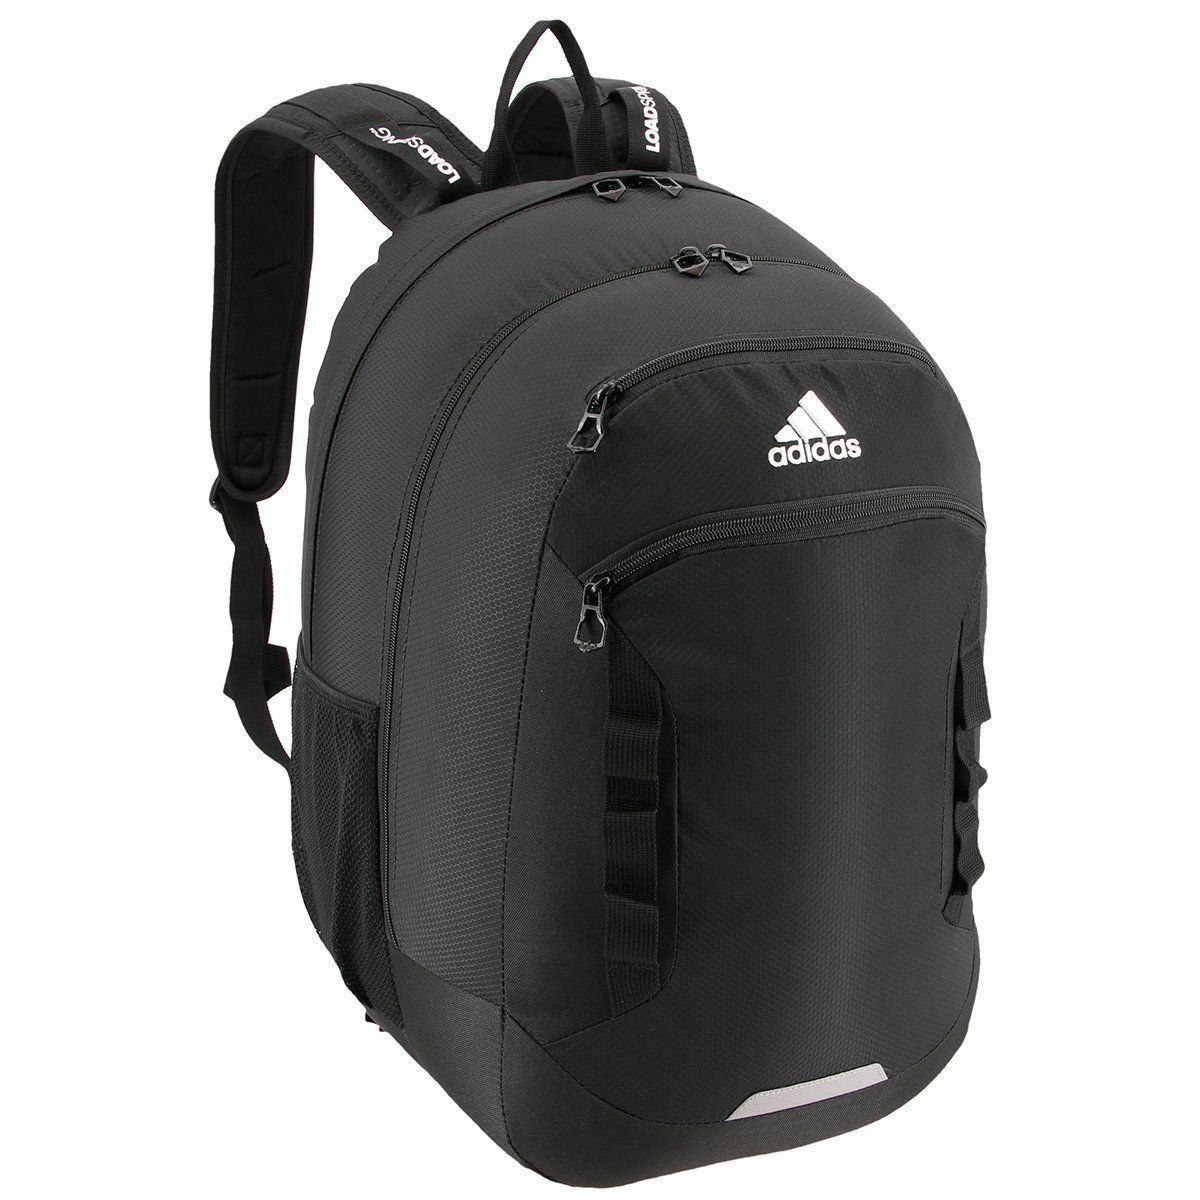 5a91236dd604 adidas Excel III Backpack 5143204 Black 2539 CU for sale online